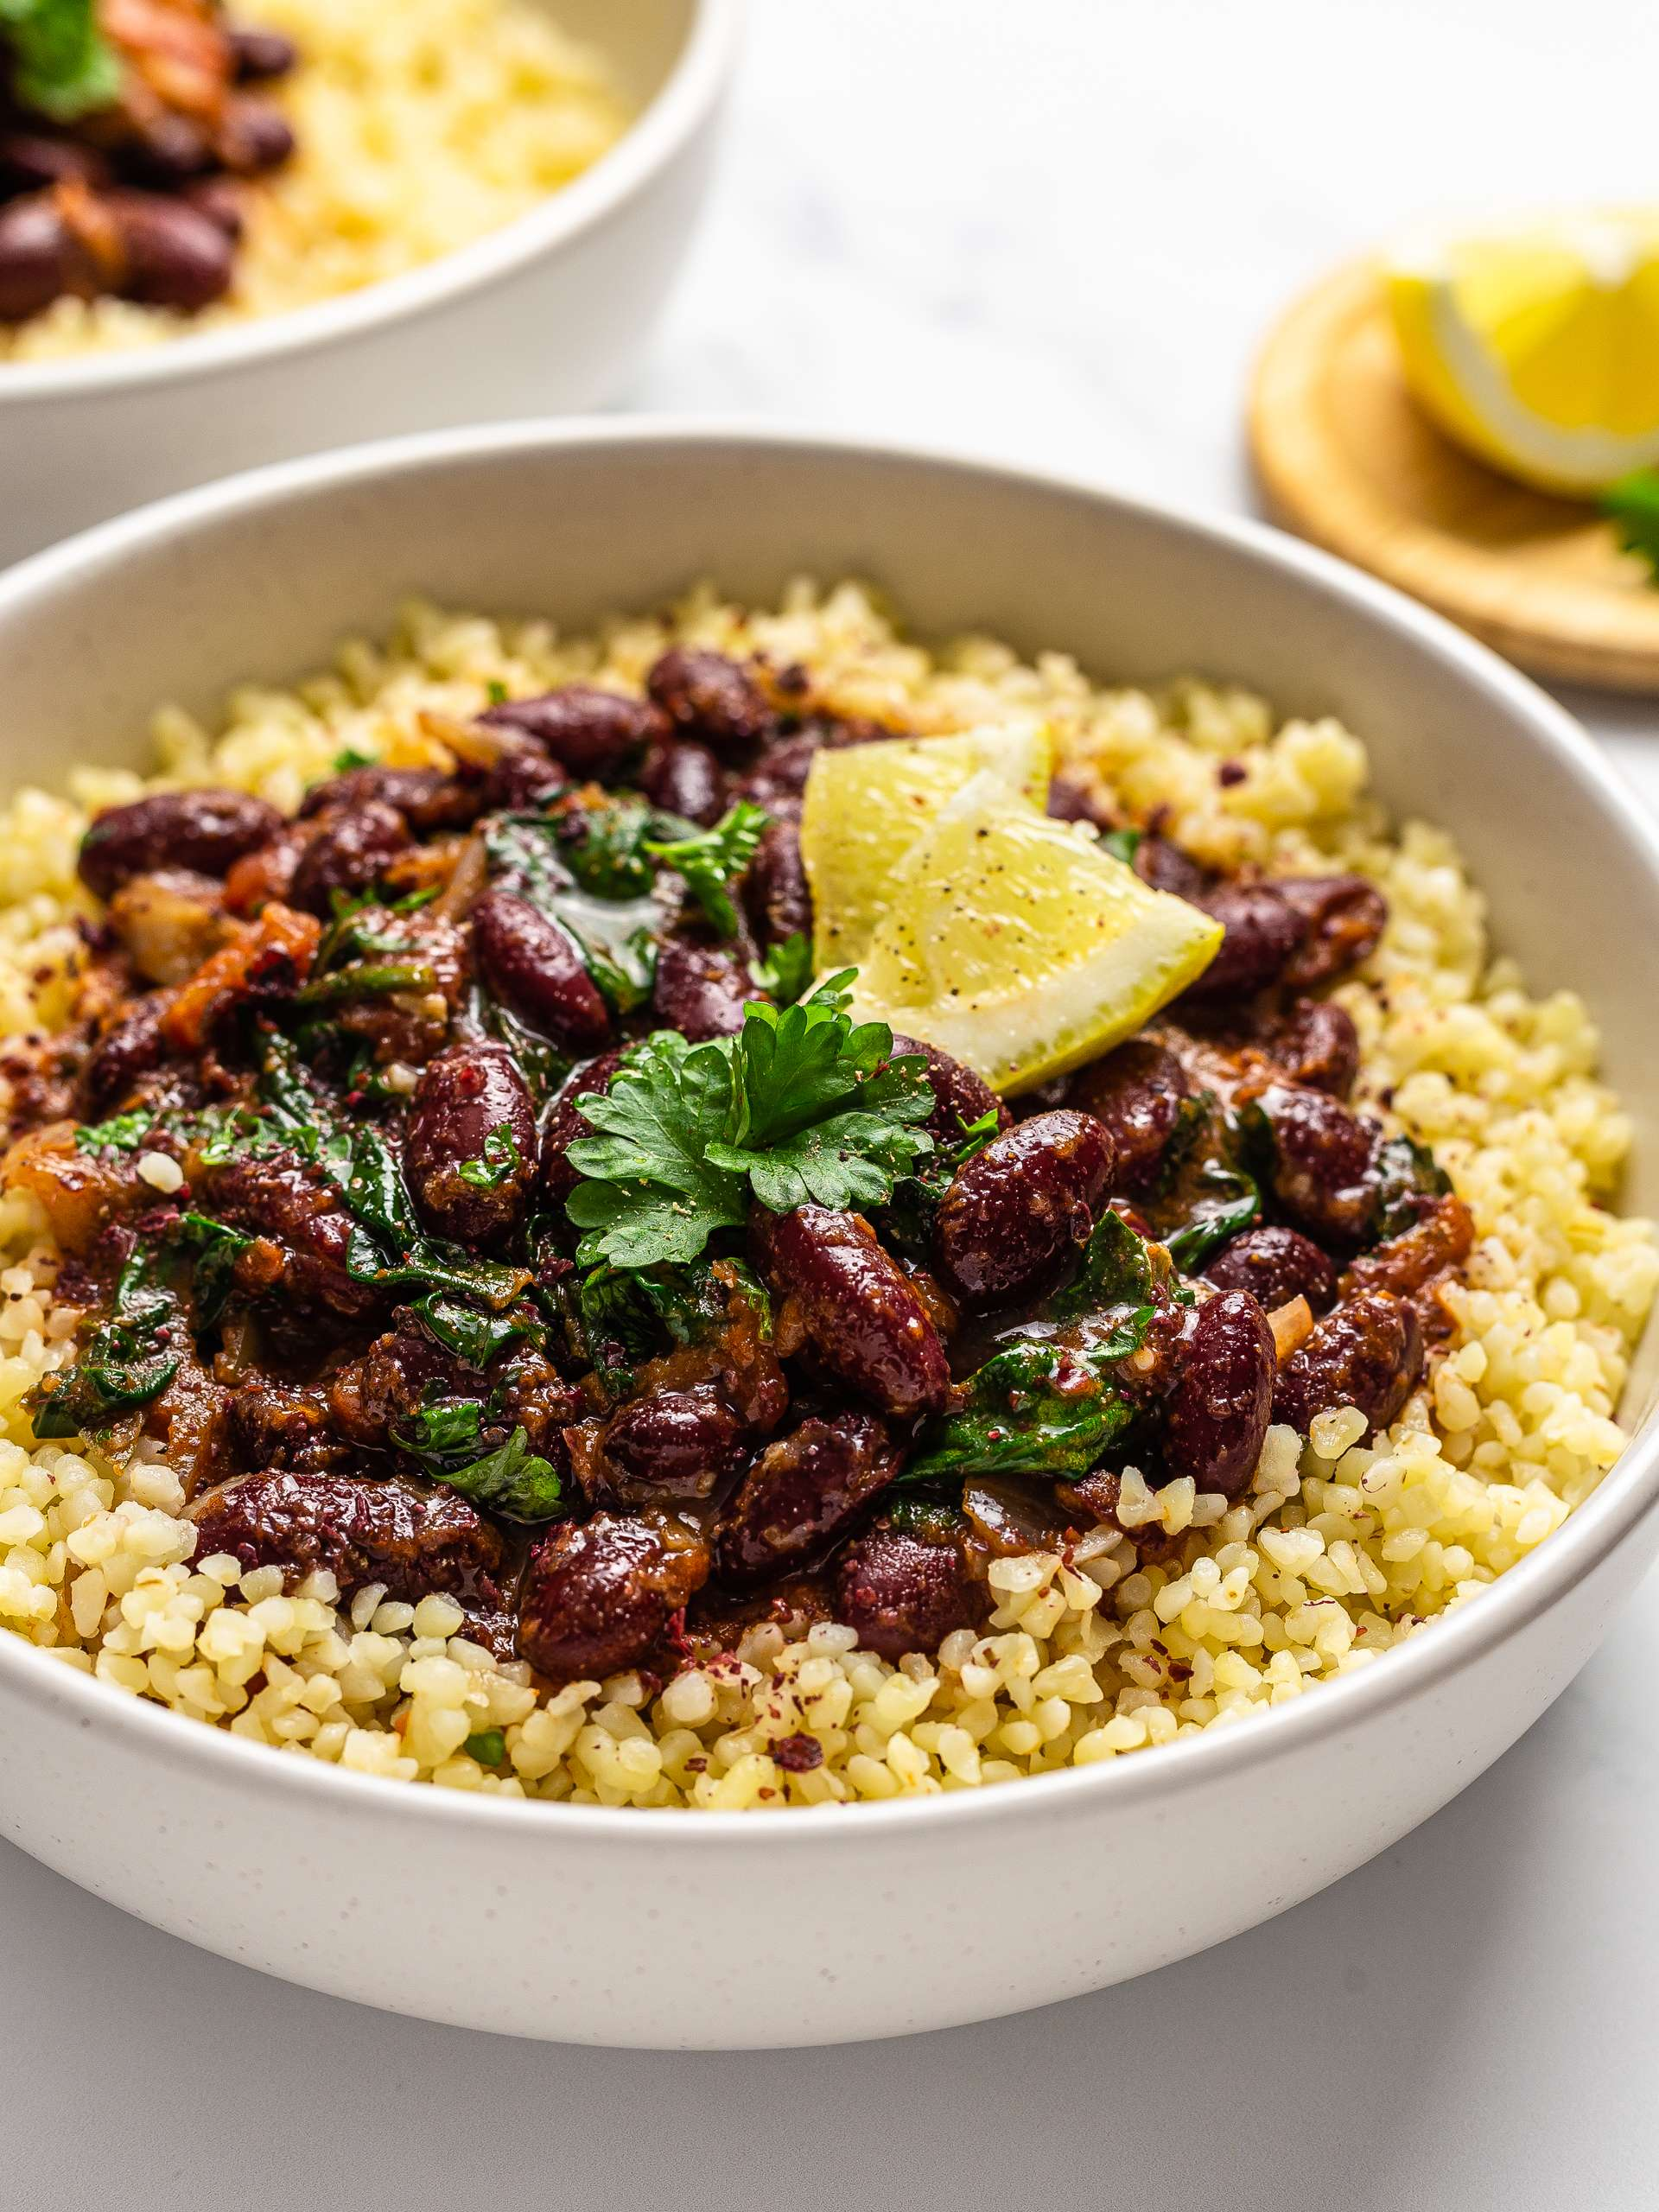 Lebanese fasolia with bulgur wheat